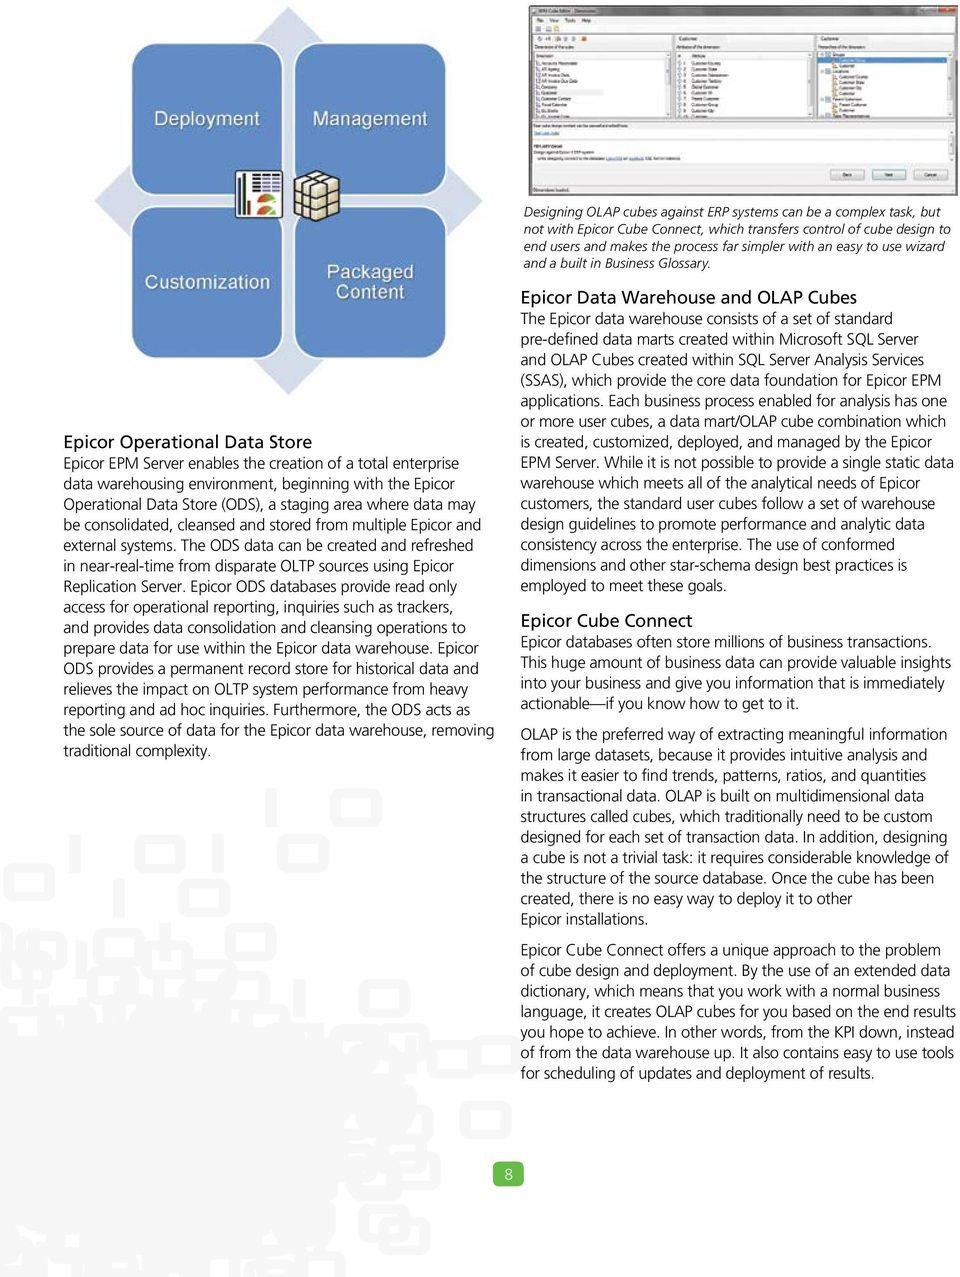 Epicor Operational Data Store Epicor EPM Server enables the creation of a total enterprise data warehousing environment, beginning with the Epicor Operational Data Store (ODS), a staging area where